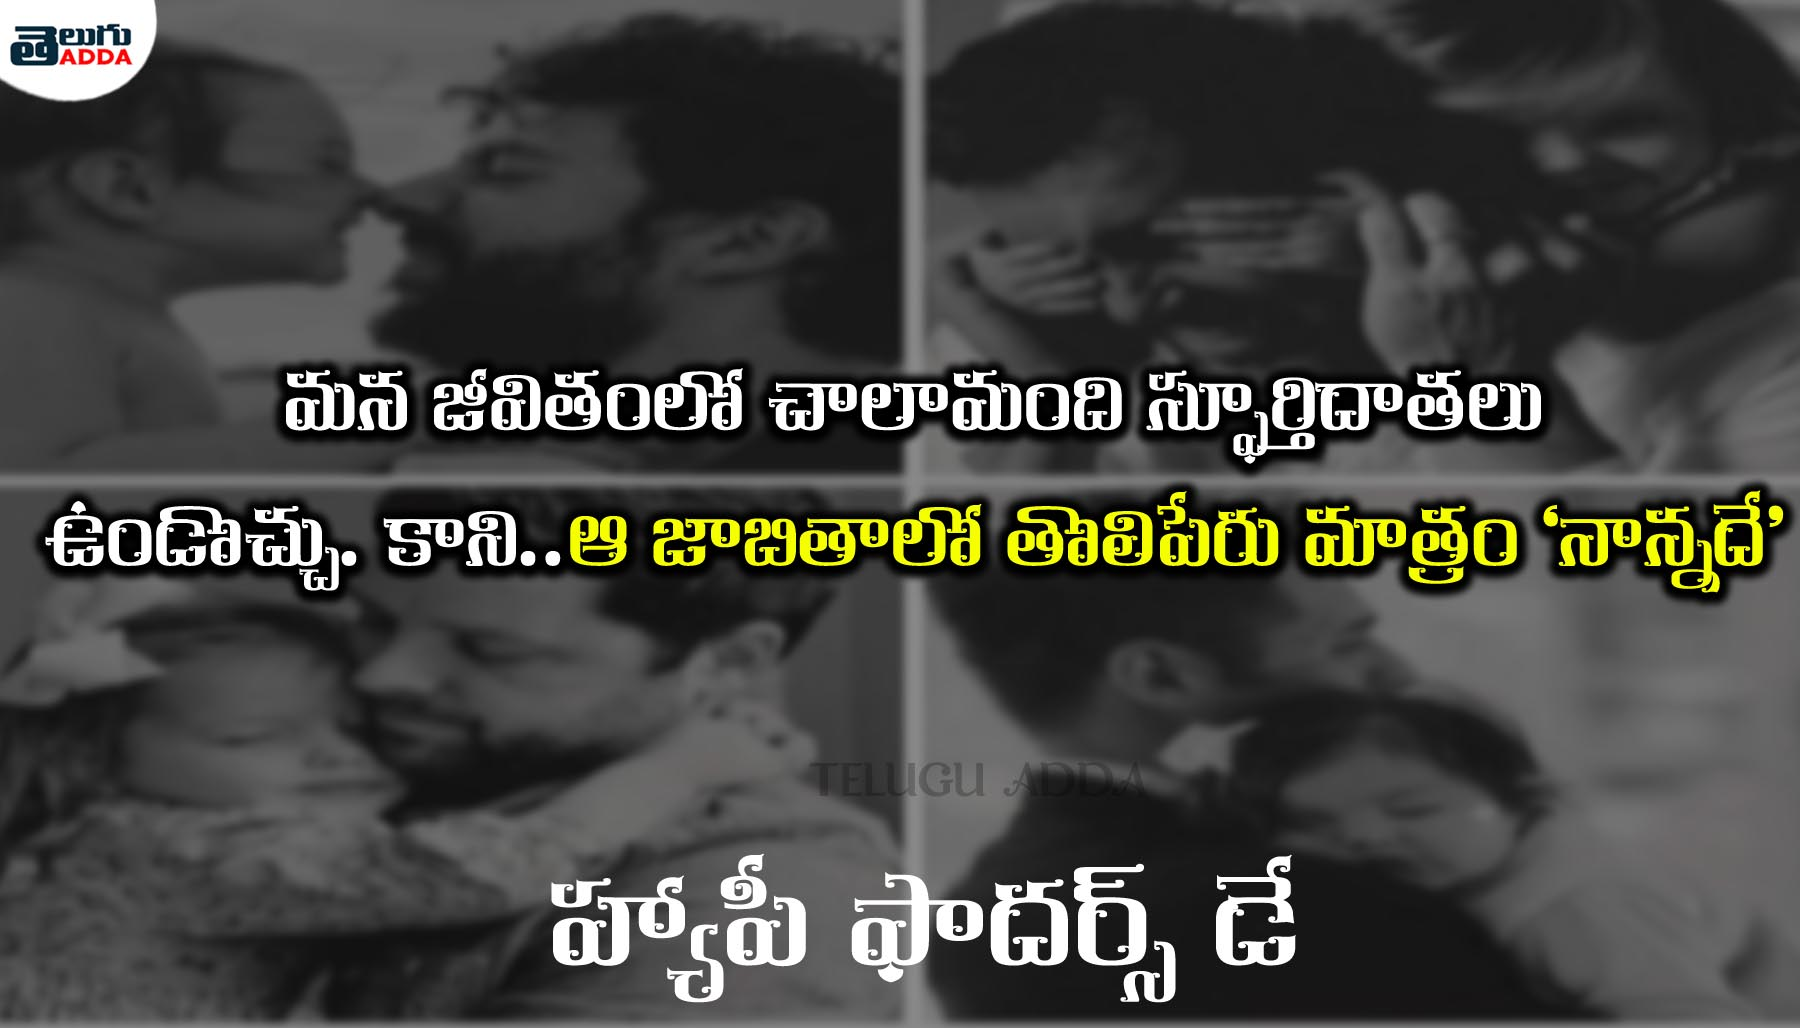 fathers day wishes in telugu 2020